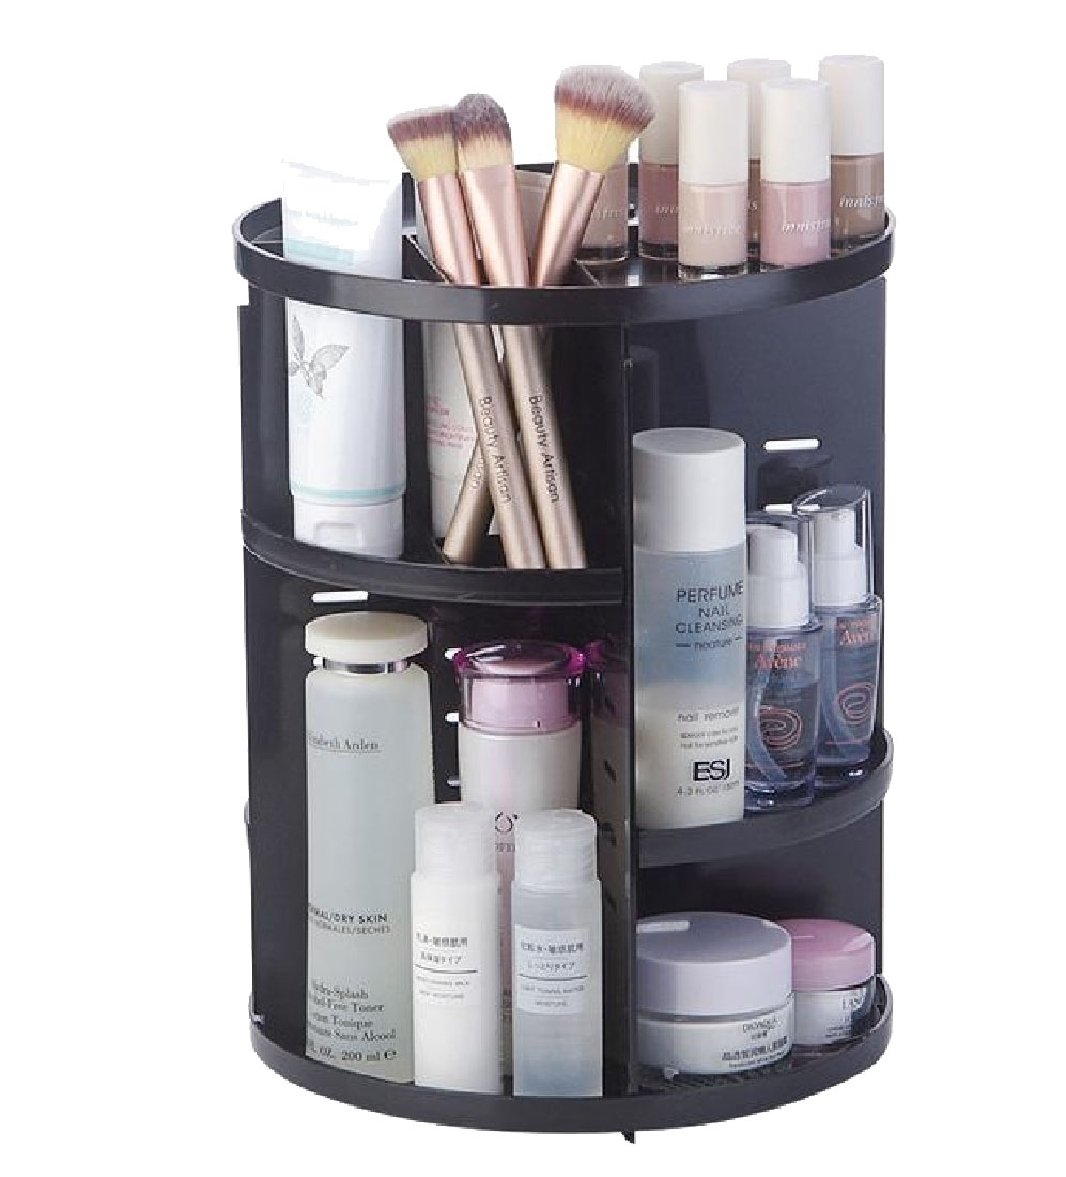 Zimaes Shelving Unit Storage Solid Casters Folding Modular Storage Rack Black 2 shelves